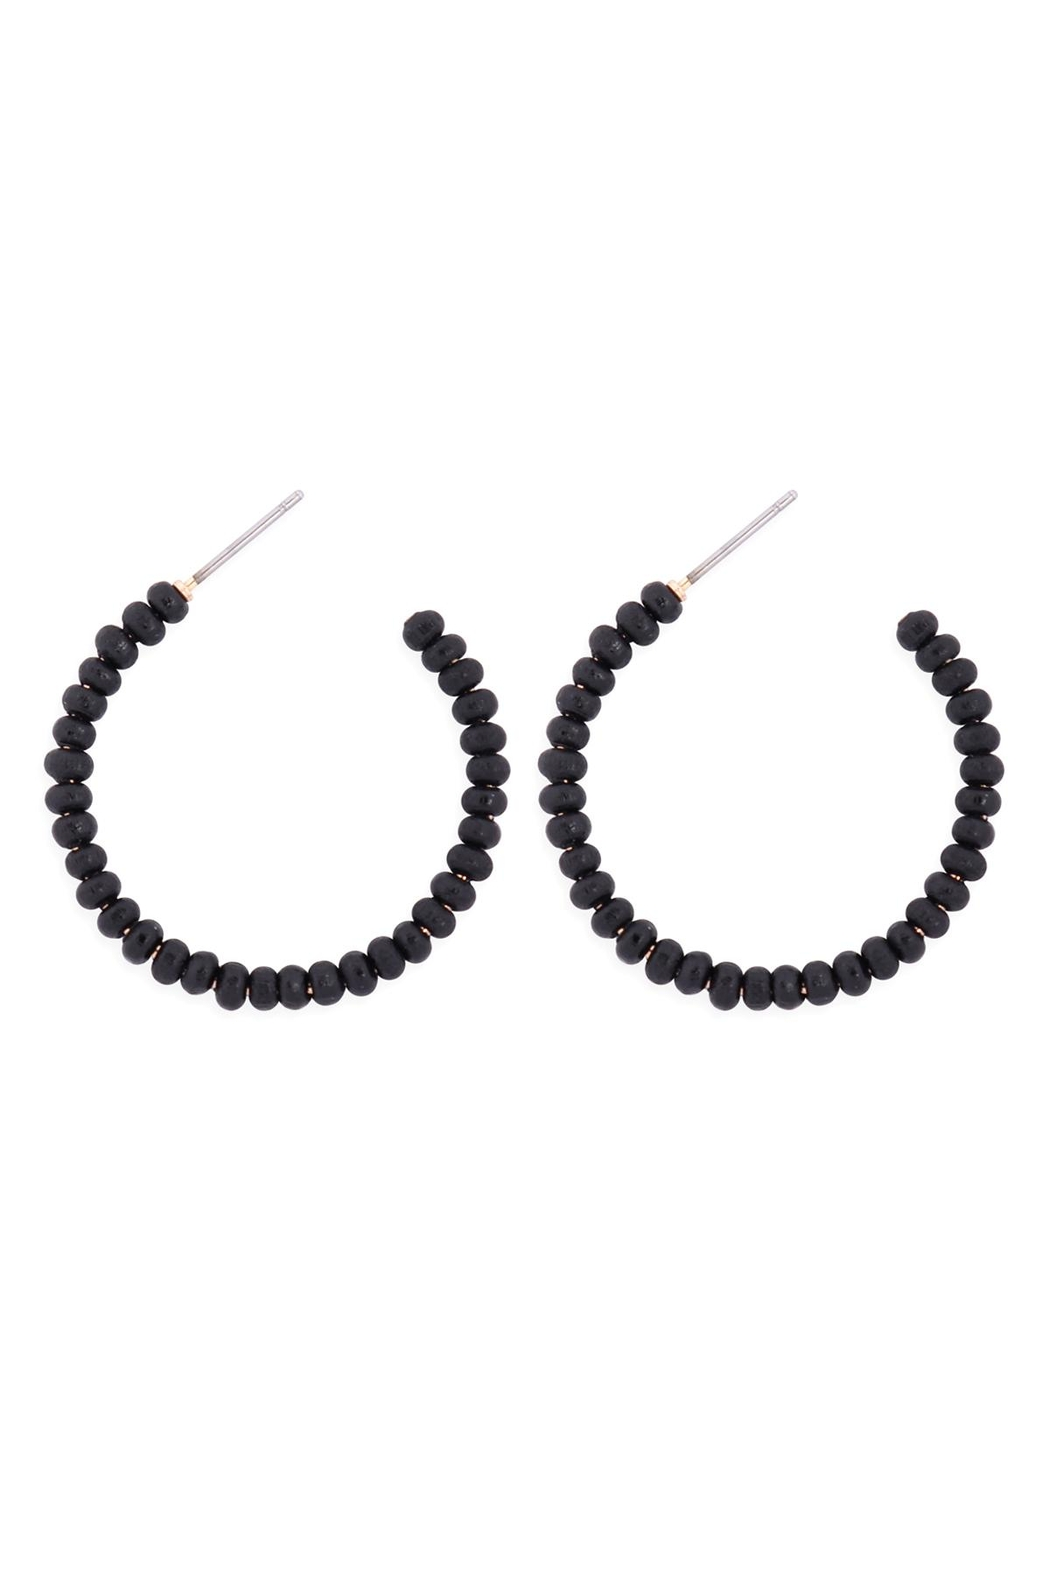 Riah Fashion Round-Shape-Beaded-Wood-Hoop-Earrings - Main Image